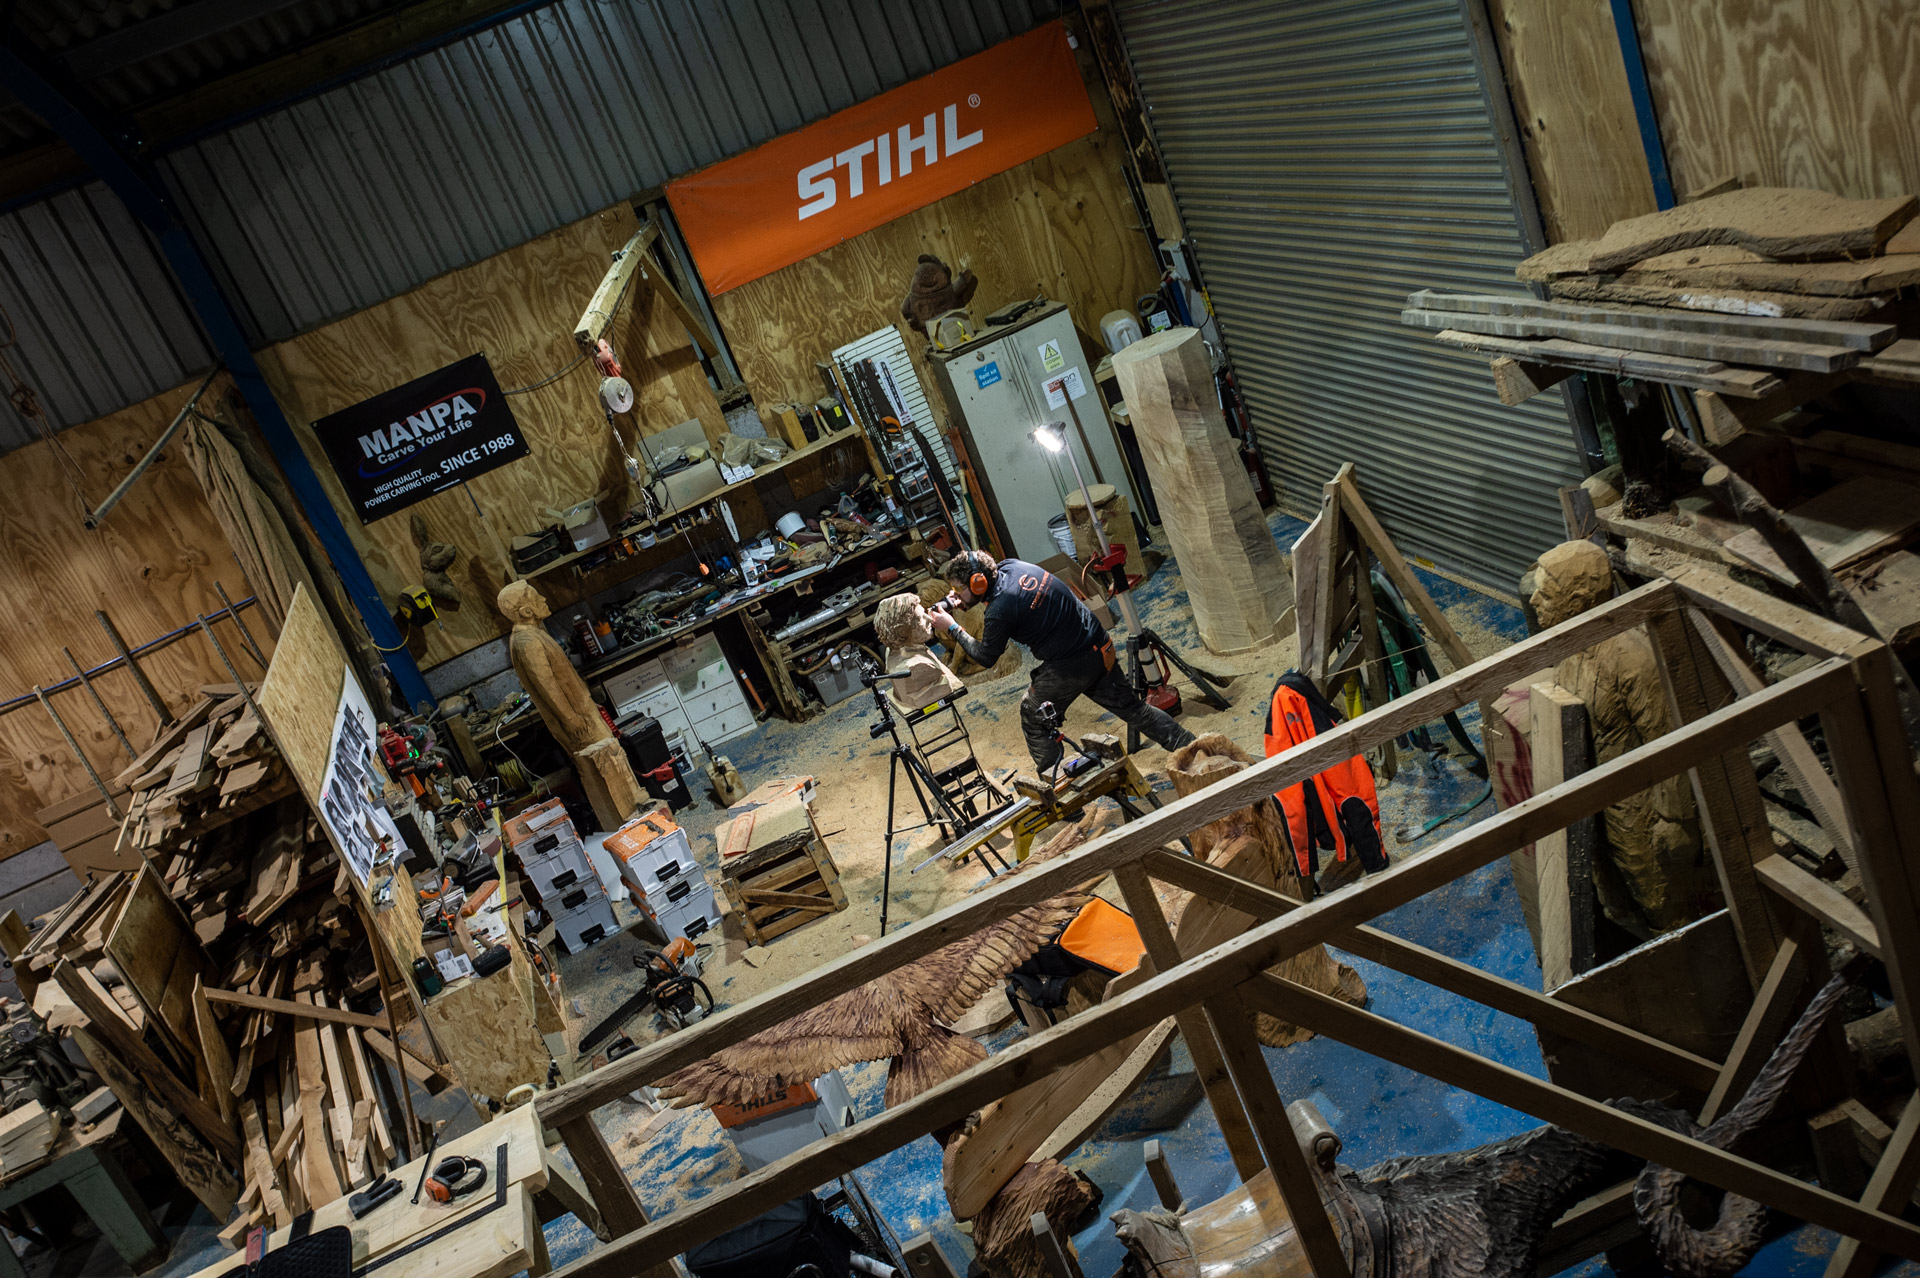 Why is art expensive? Simon O'Rourke is working on a sculpture in the middle of a busy workshop. Running the workshop, insurance, licensing for the chainsaw users etc are some of the costs behind his artwork